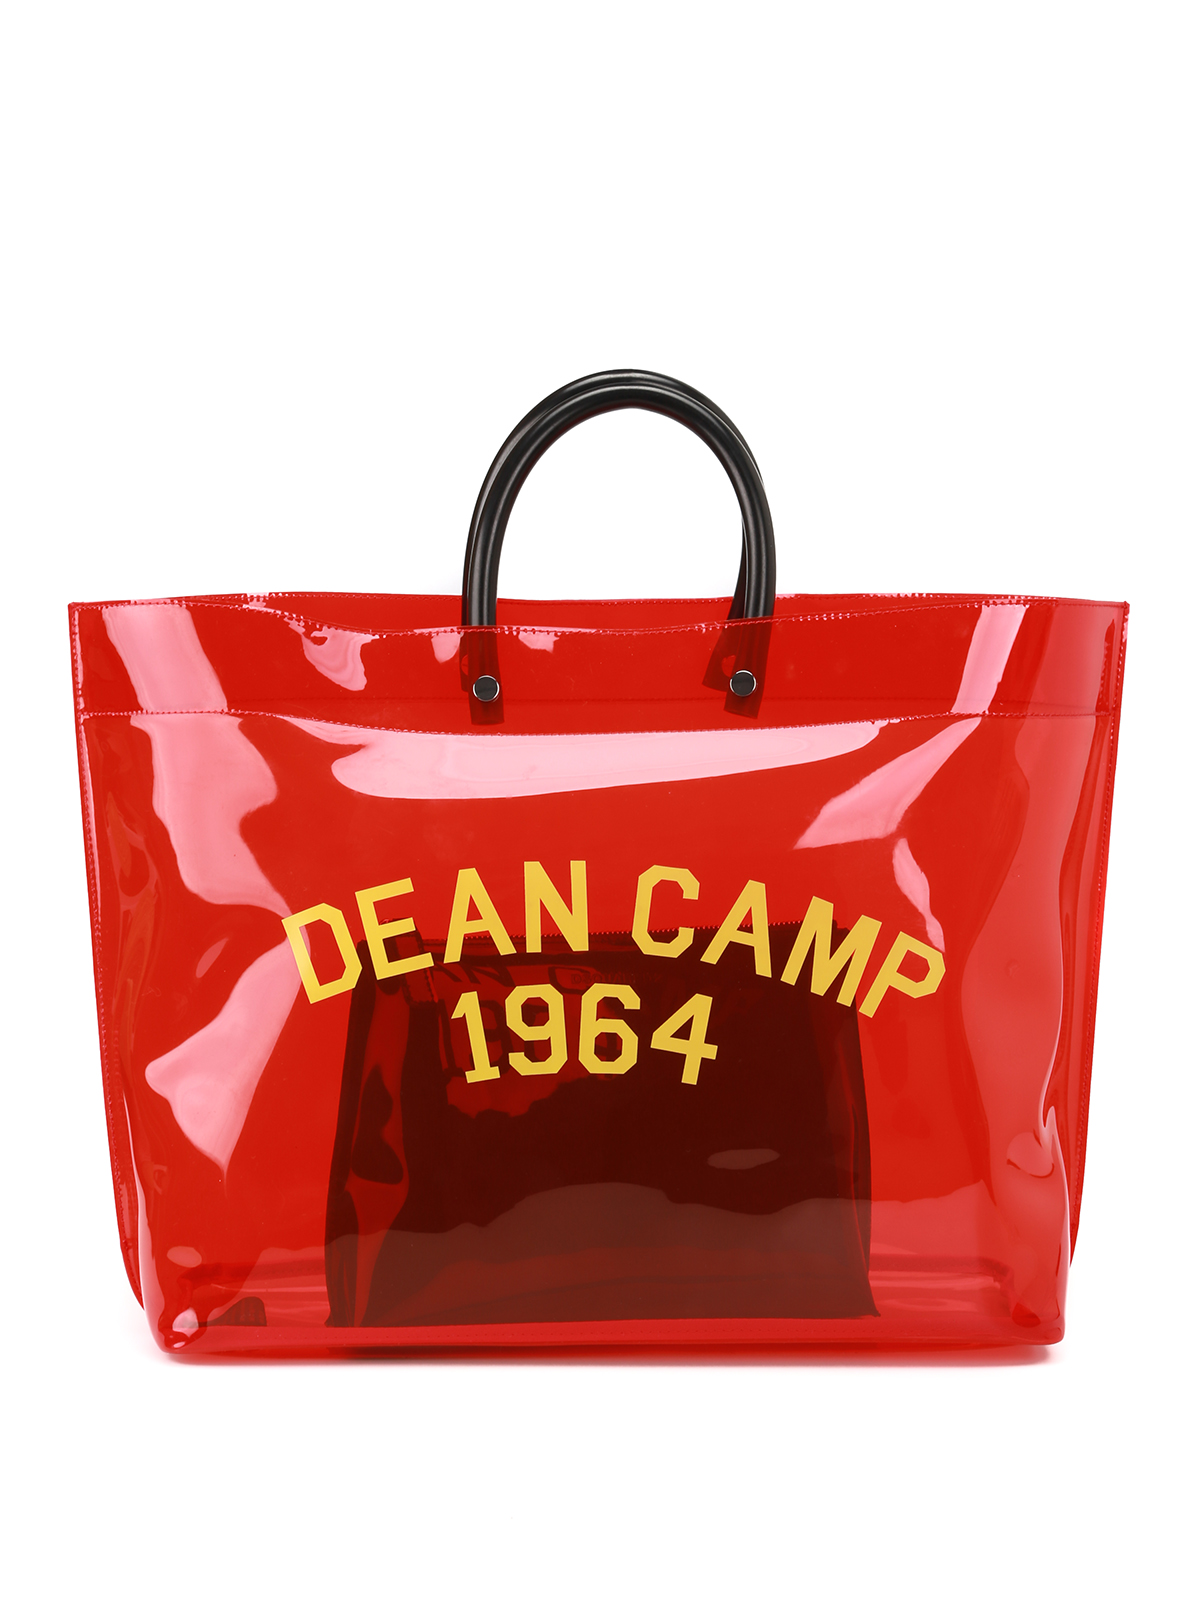 Dean Camp 1964 tote bag Dsquared2 xOTMv3